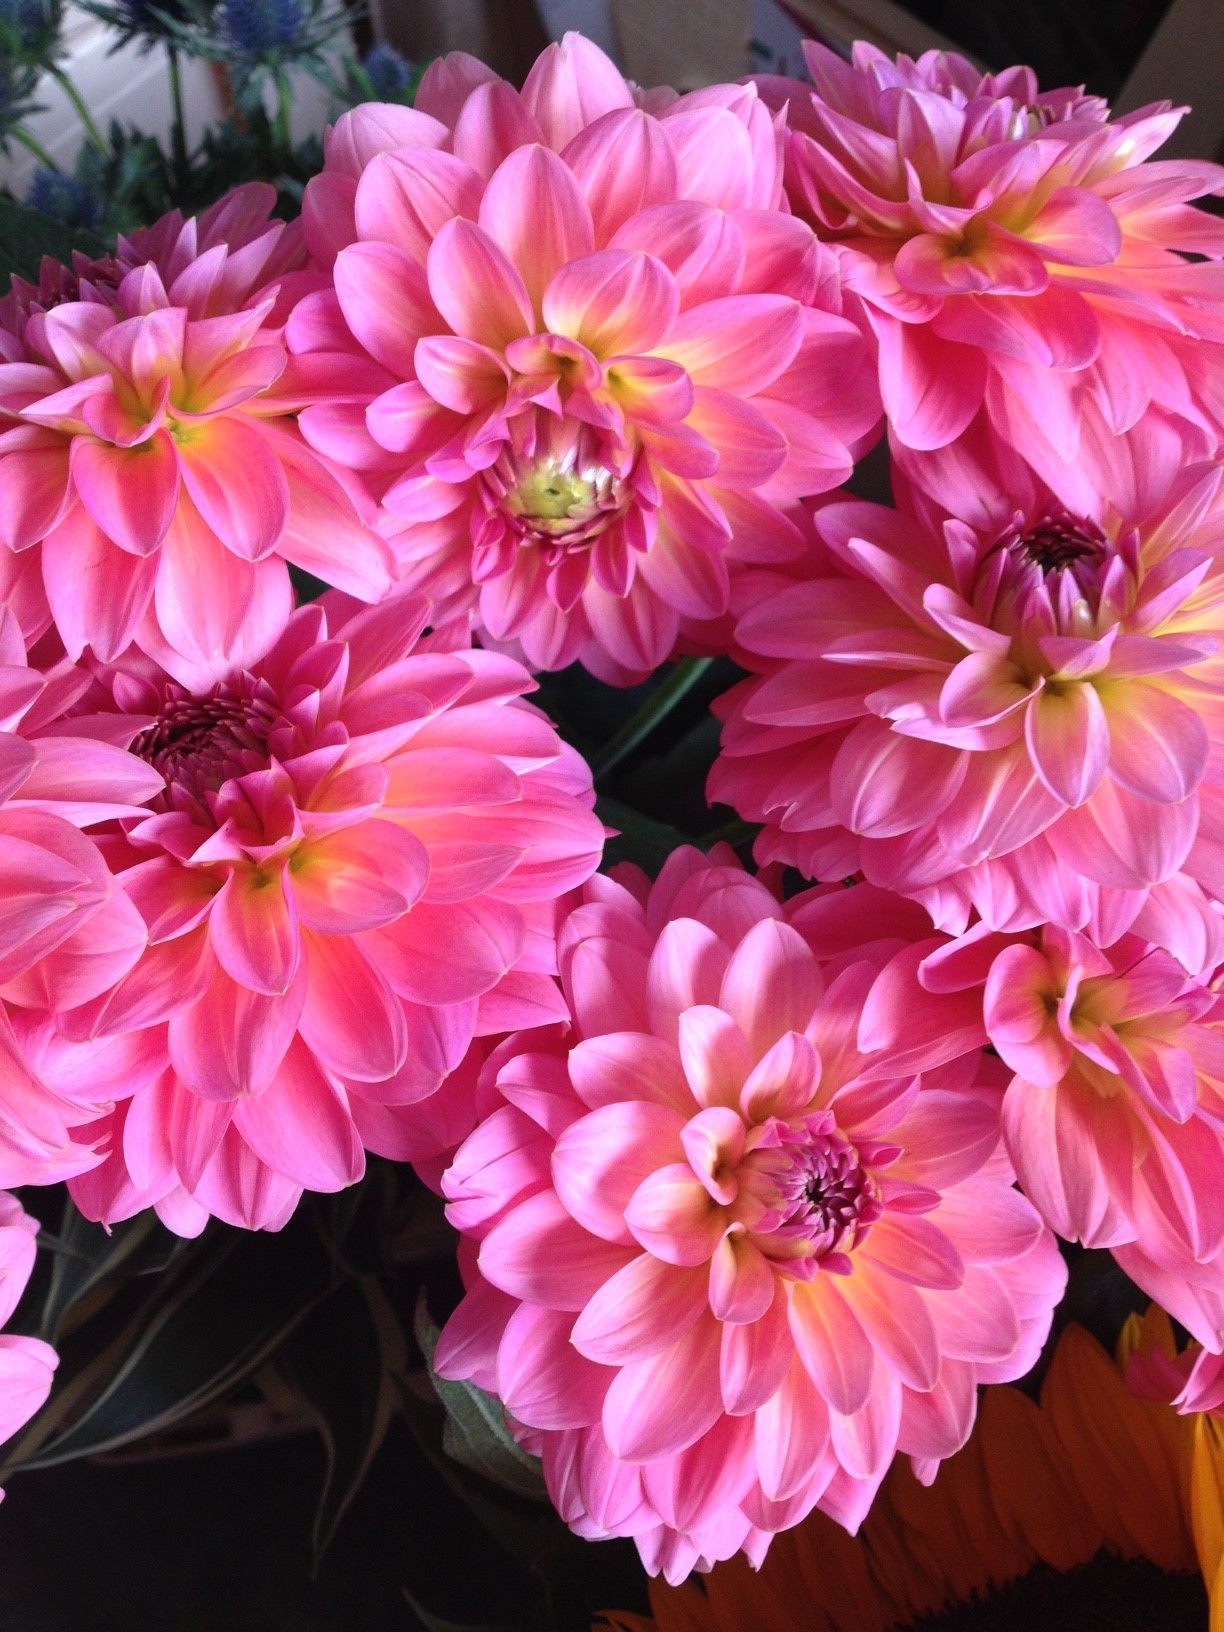 Dahlia pink runner which is a great match to the miss piggy rose dahlia pink runner which is a great match to the miss piggy rose sold in bunches of 10 stems from the flowermonger the wholesale floral home delivery izmirmasajfo